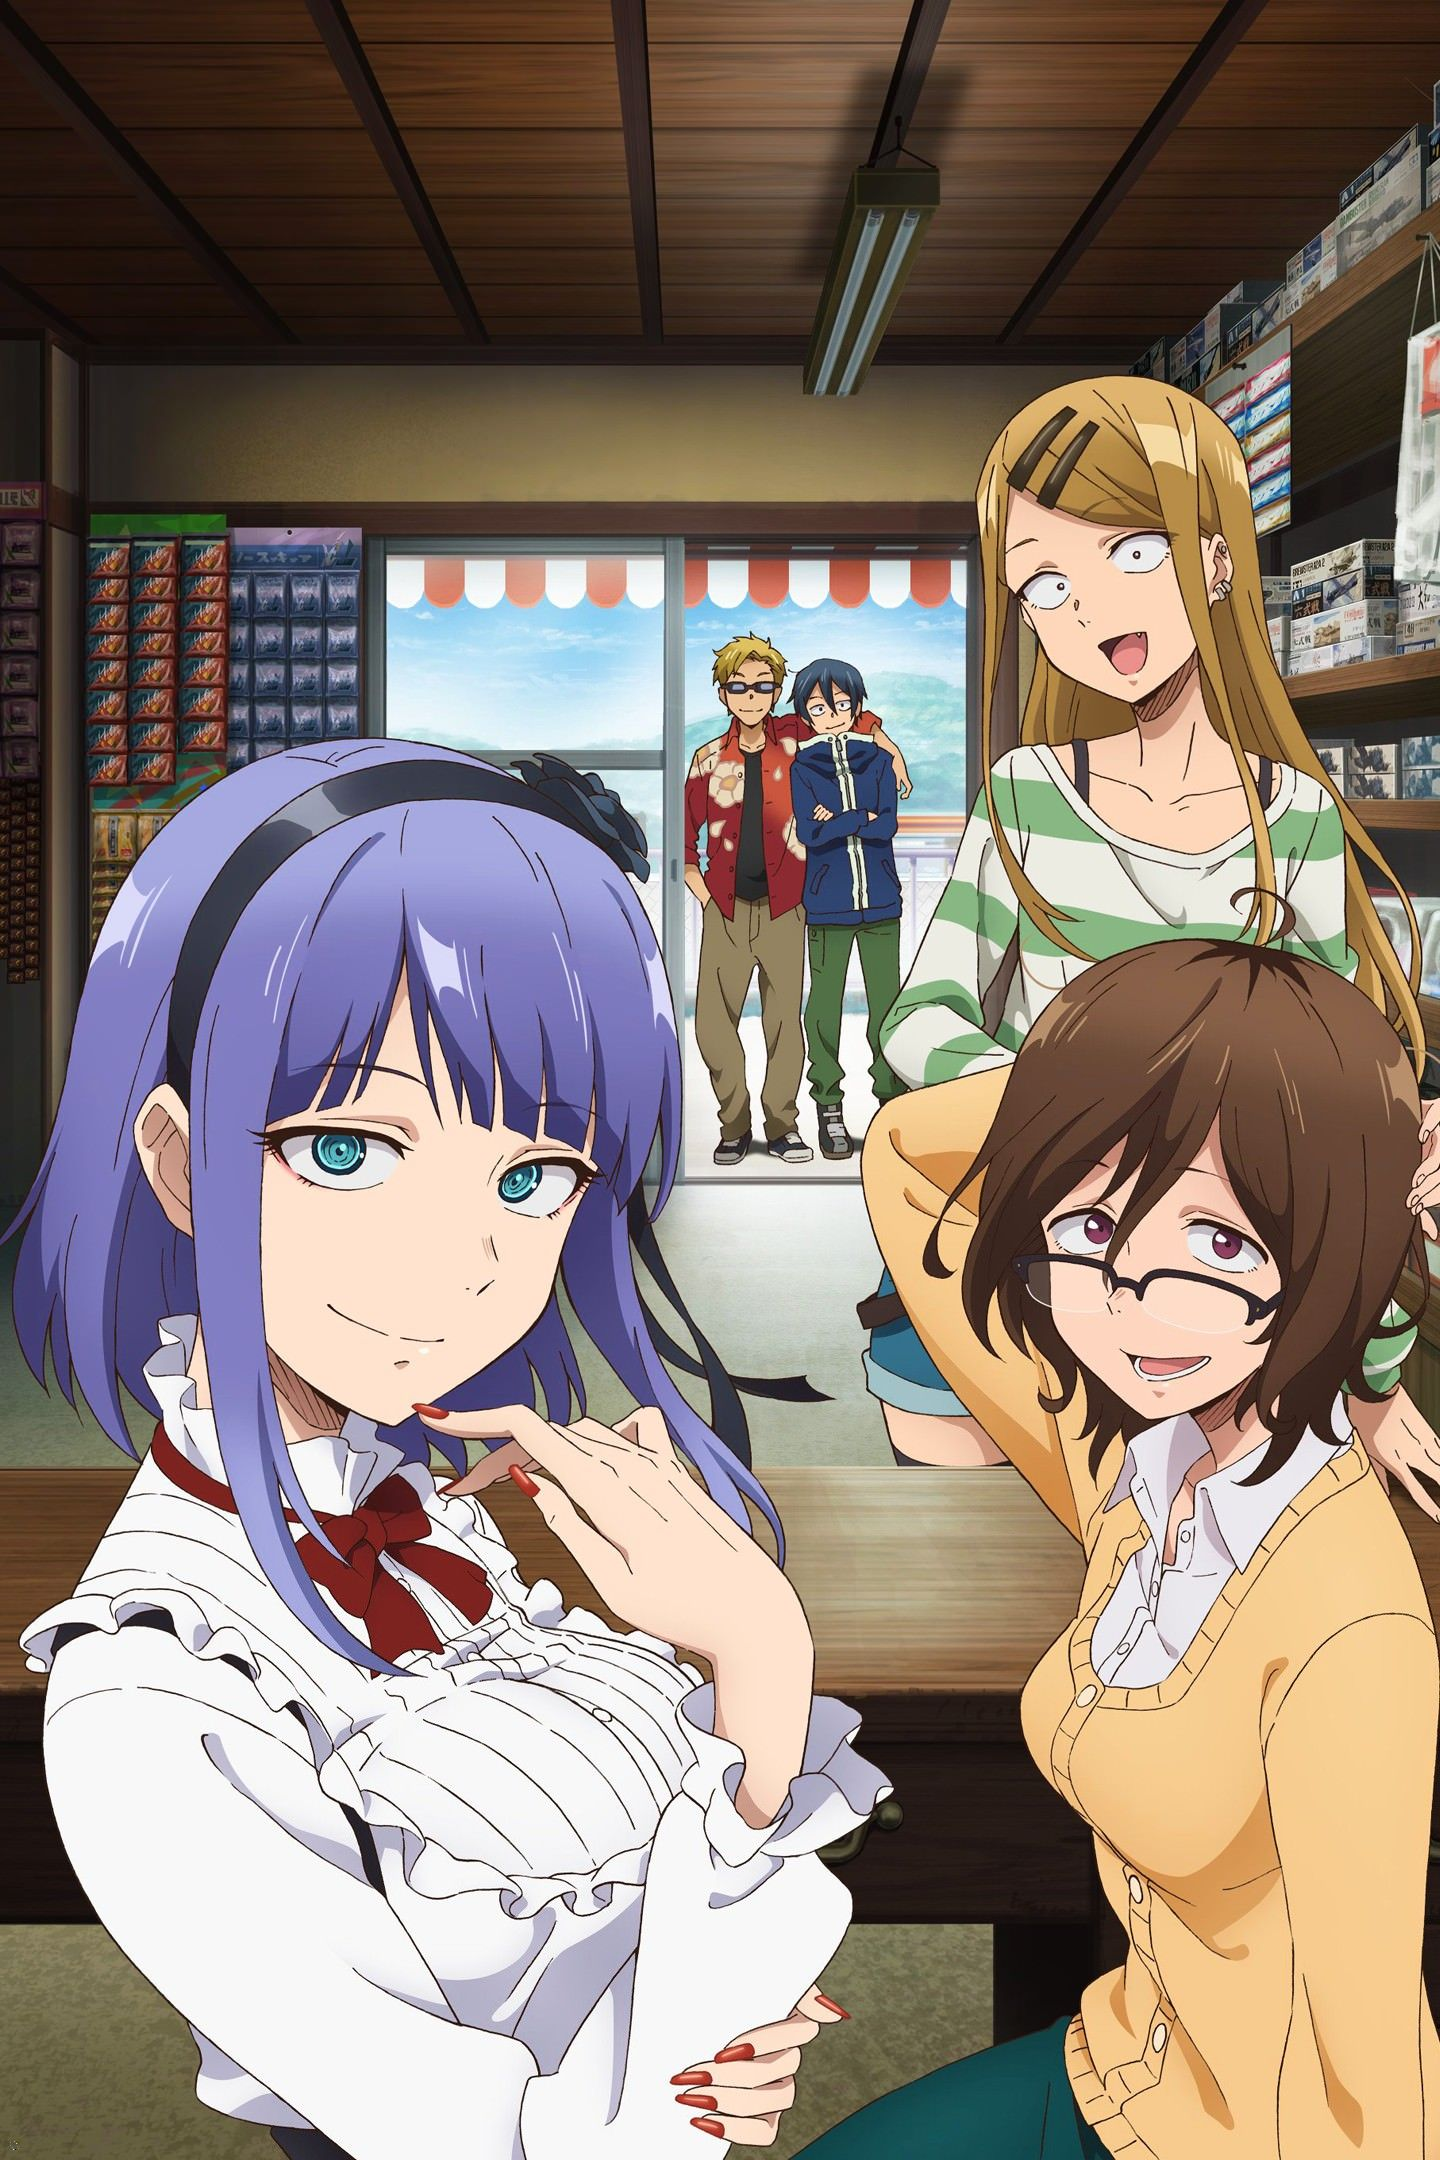 Winter 2018, Dagashi Kashi 2 Miffed that it's only half